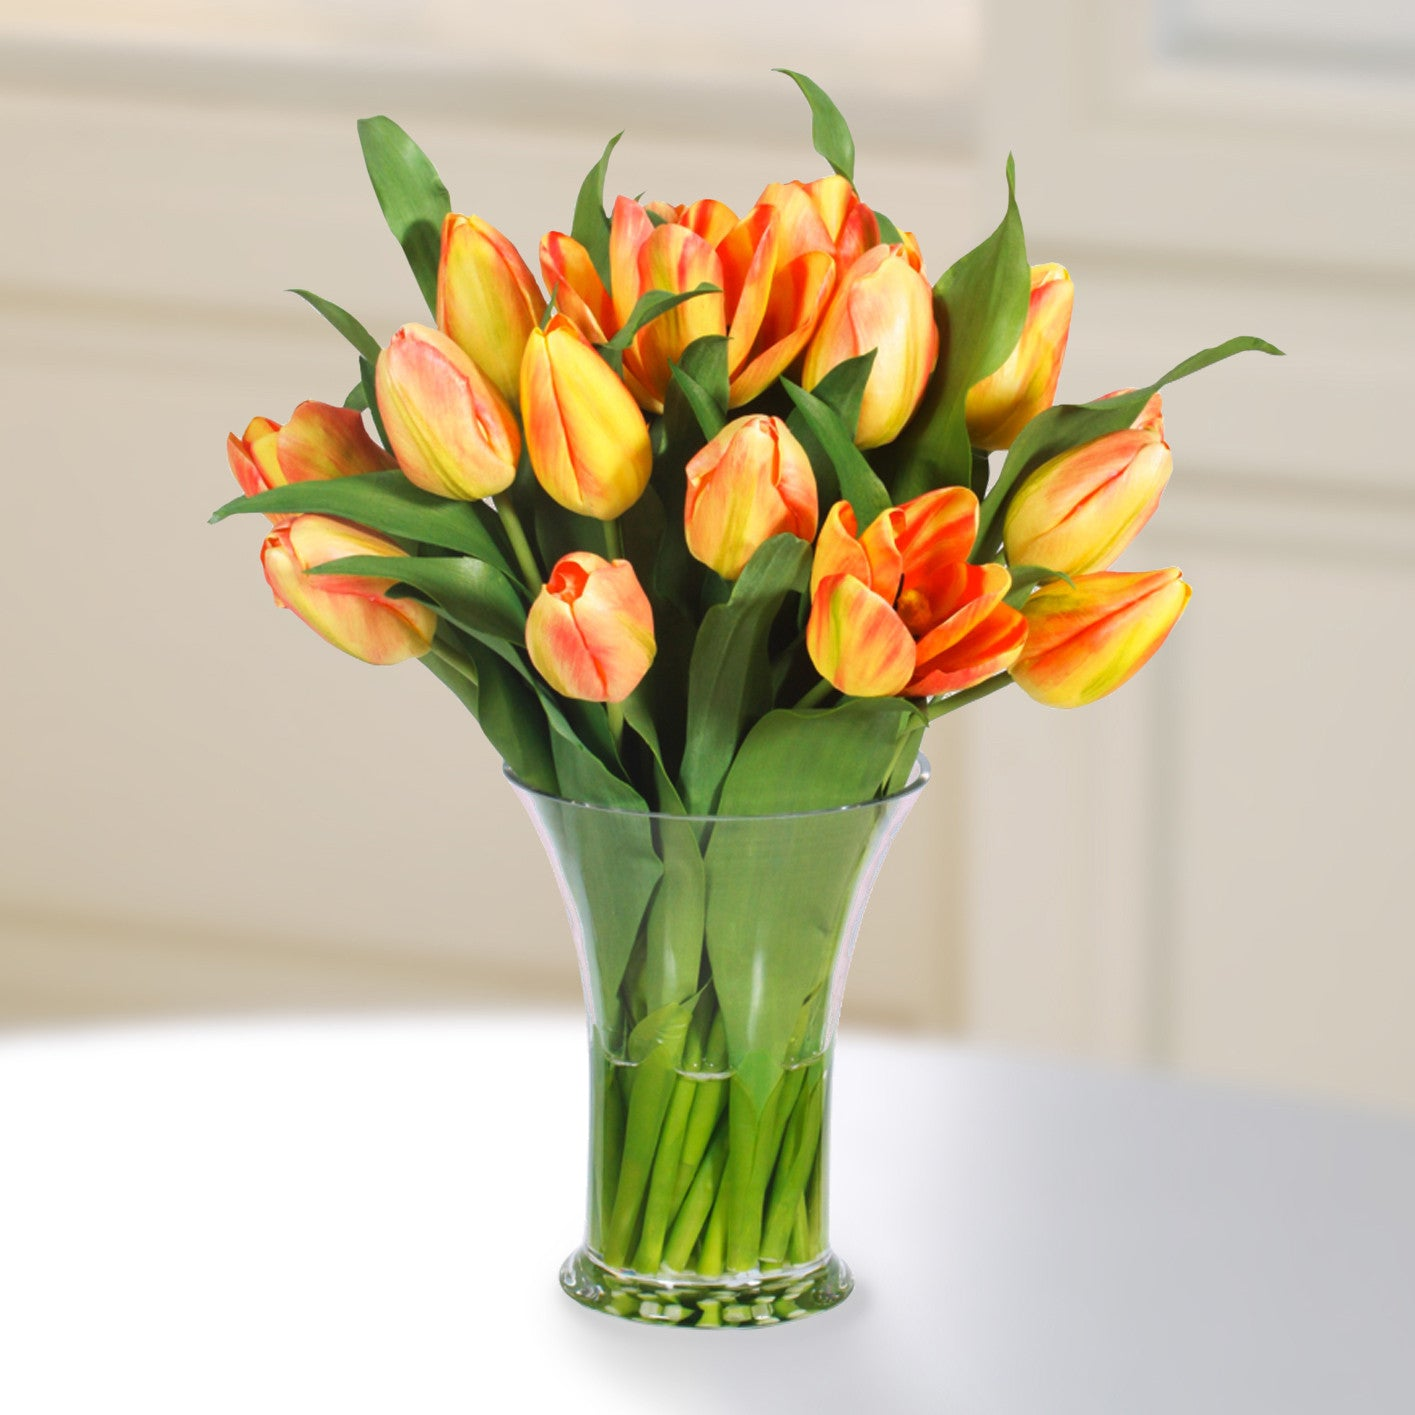 TULIP IN GLASS 16'' (WHI030-YLOR) - Winward Home silk flower arrangements